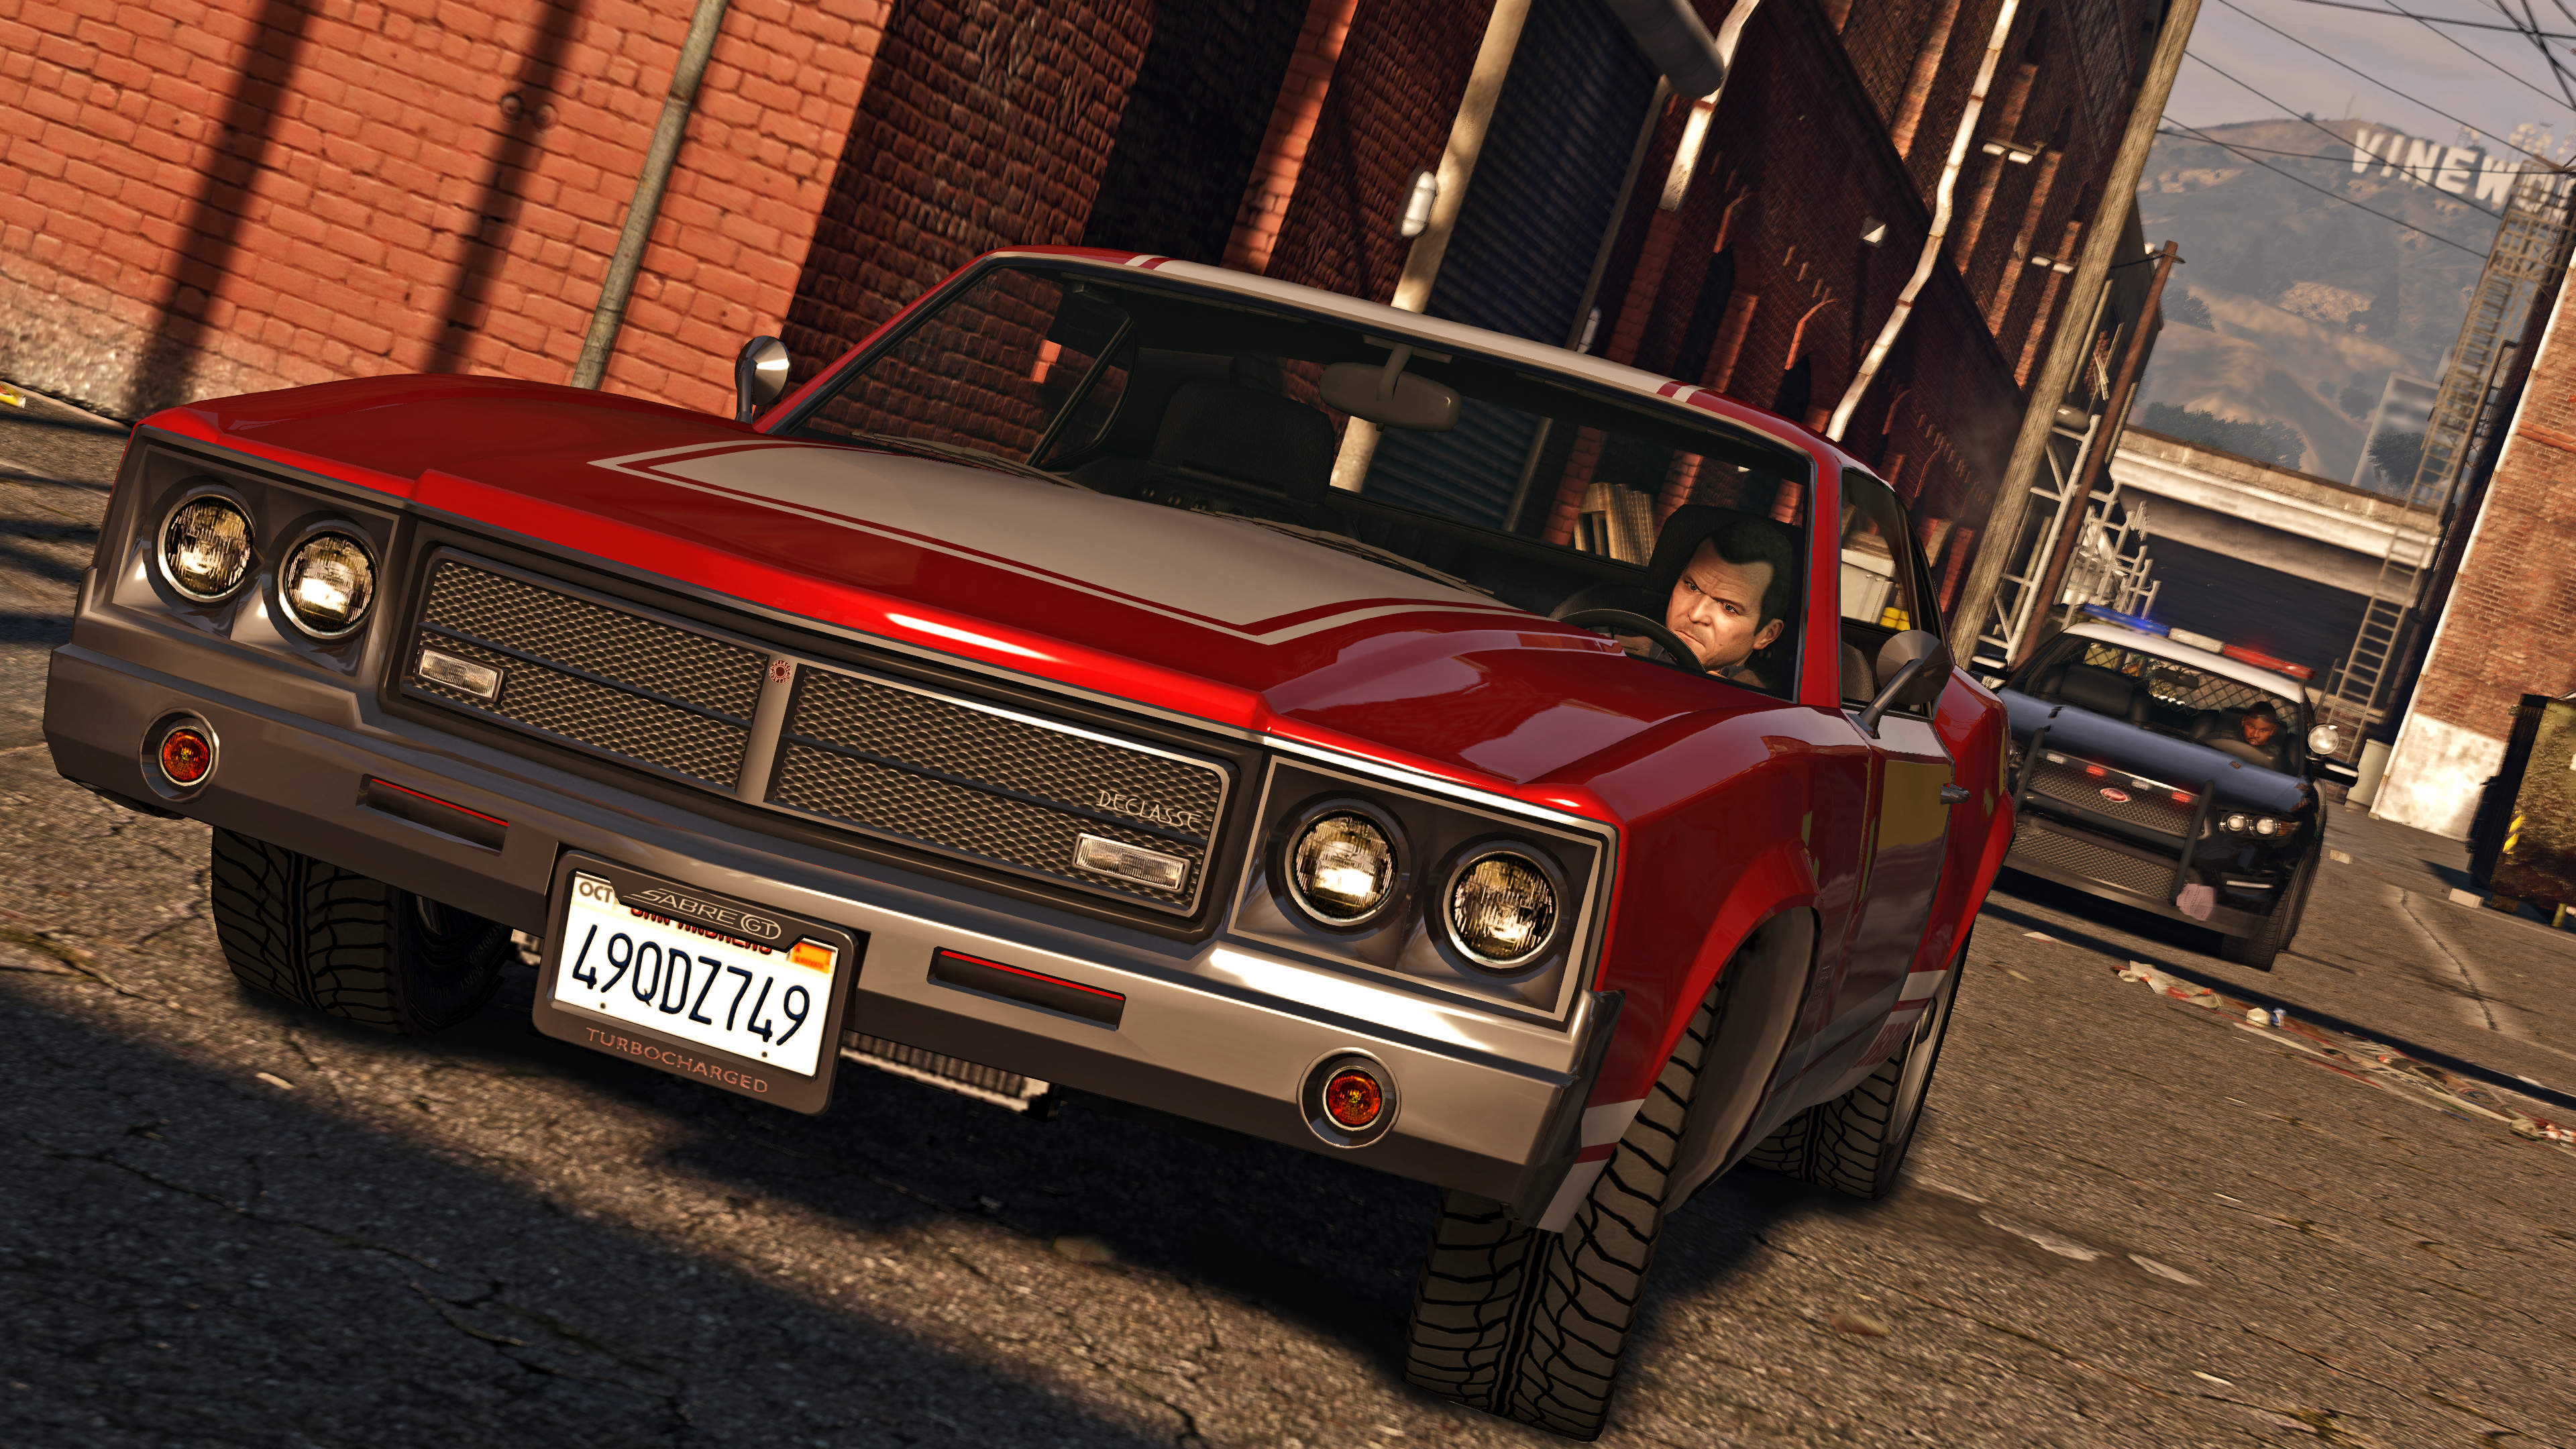 487 Grand Theft Auto V Hd Wallpapers Background Images Wallpaper